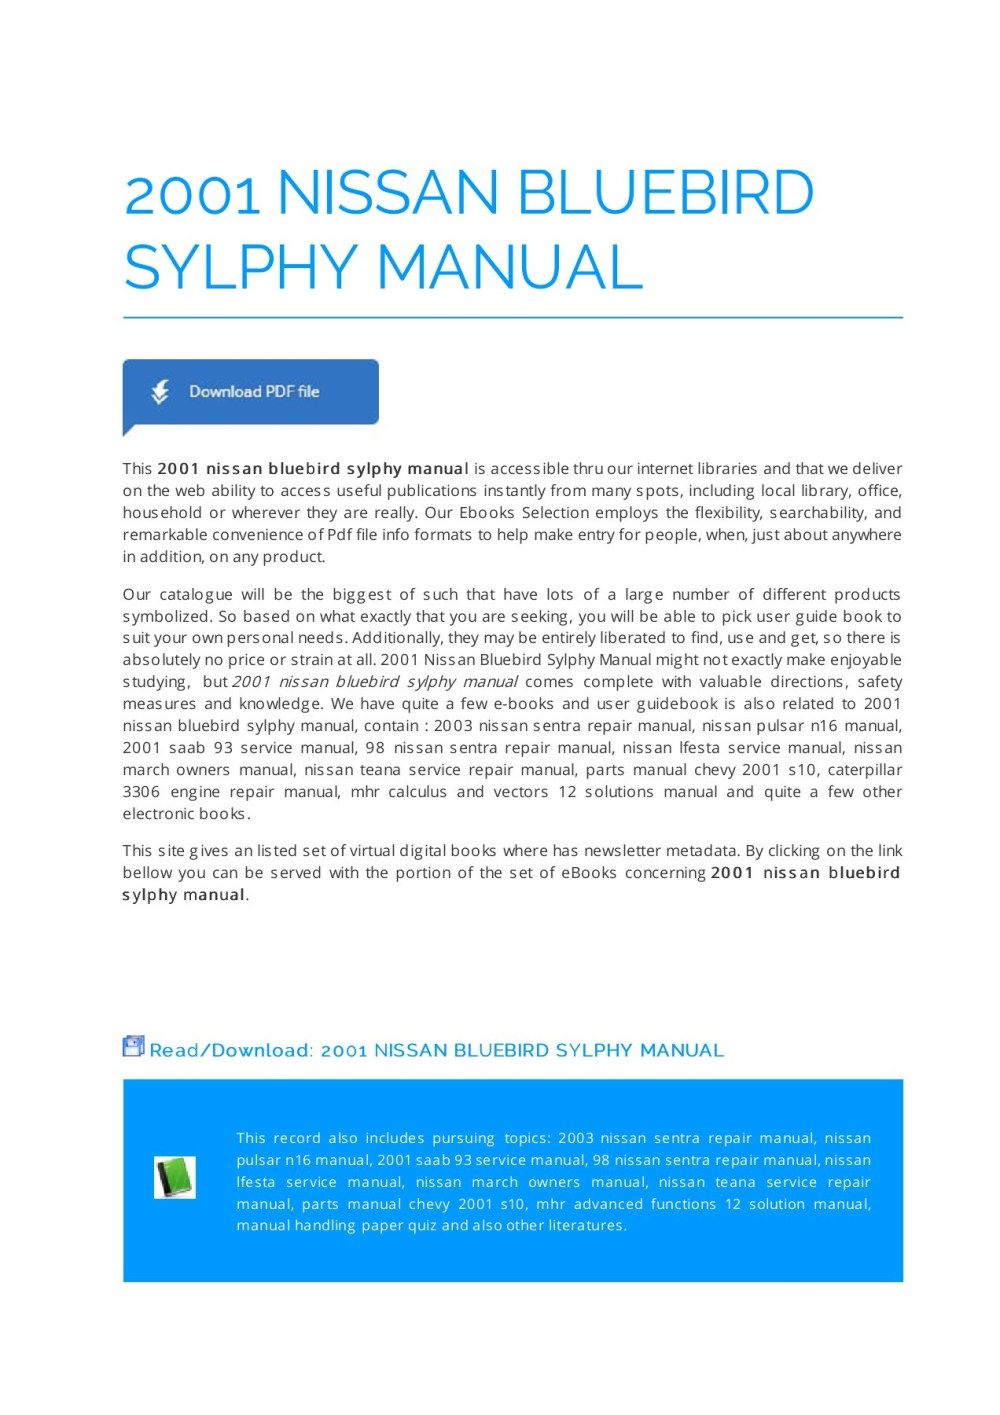 medium resolution of 2001 nissan bluebird sylphy manual manualrepo com pages 1 5 text version fliphtml5